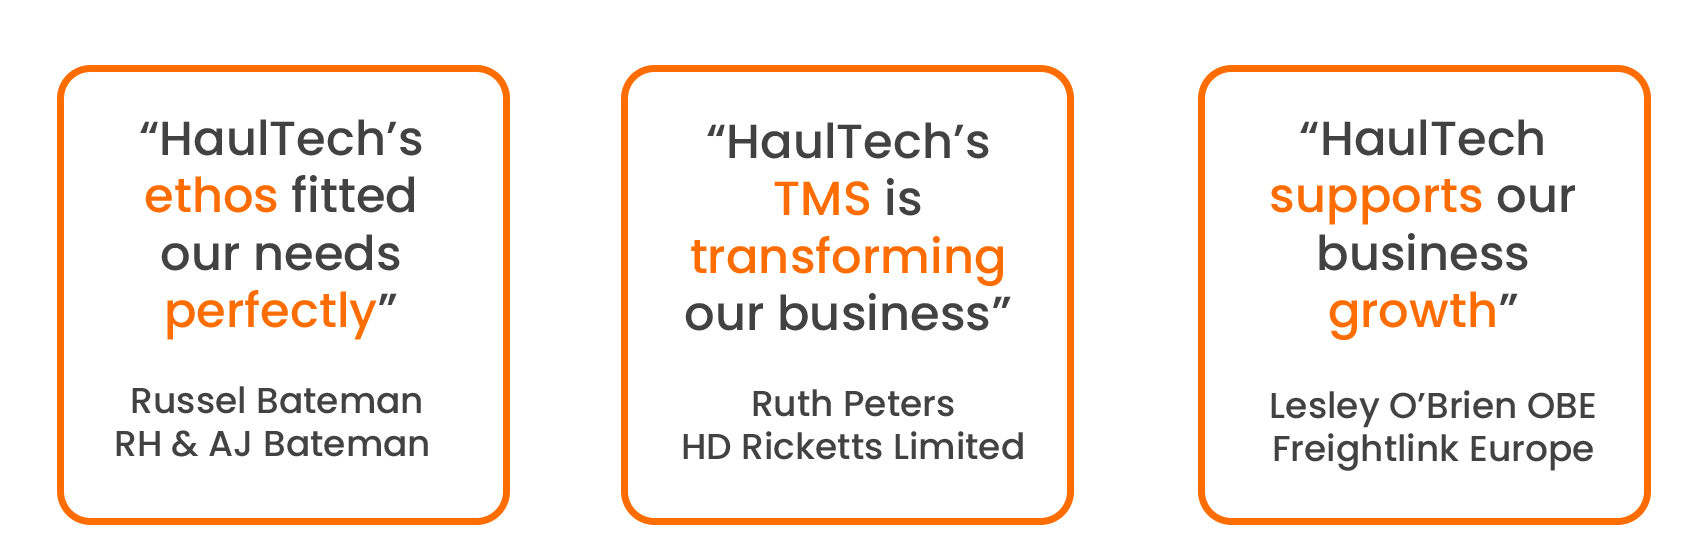 RH & Bateman, Freightlink Europe and HD Ricketts on HaulTech's Transport Management System